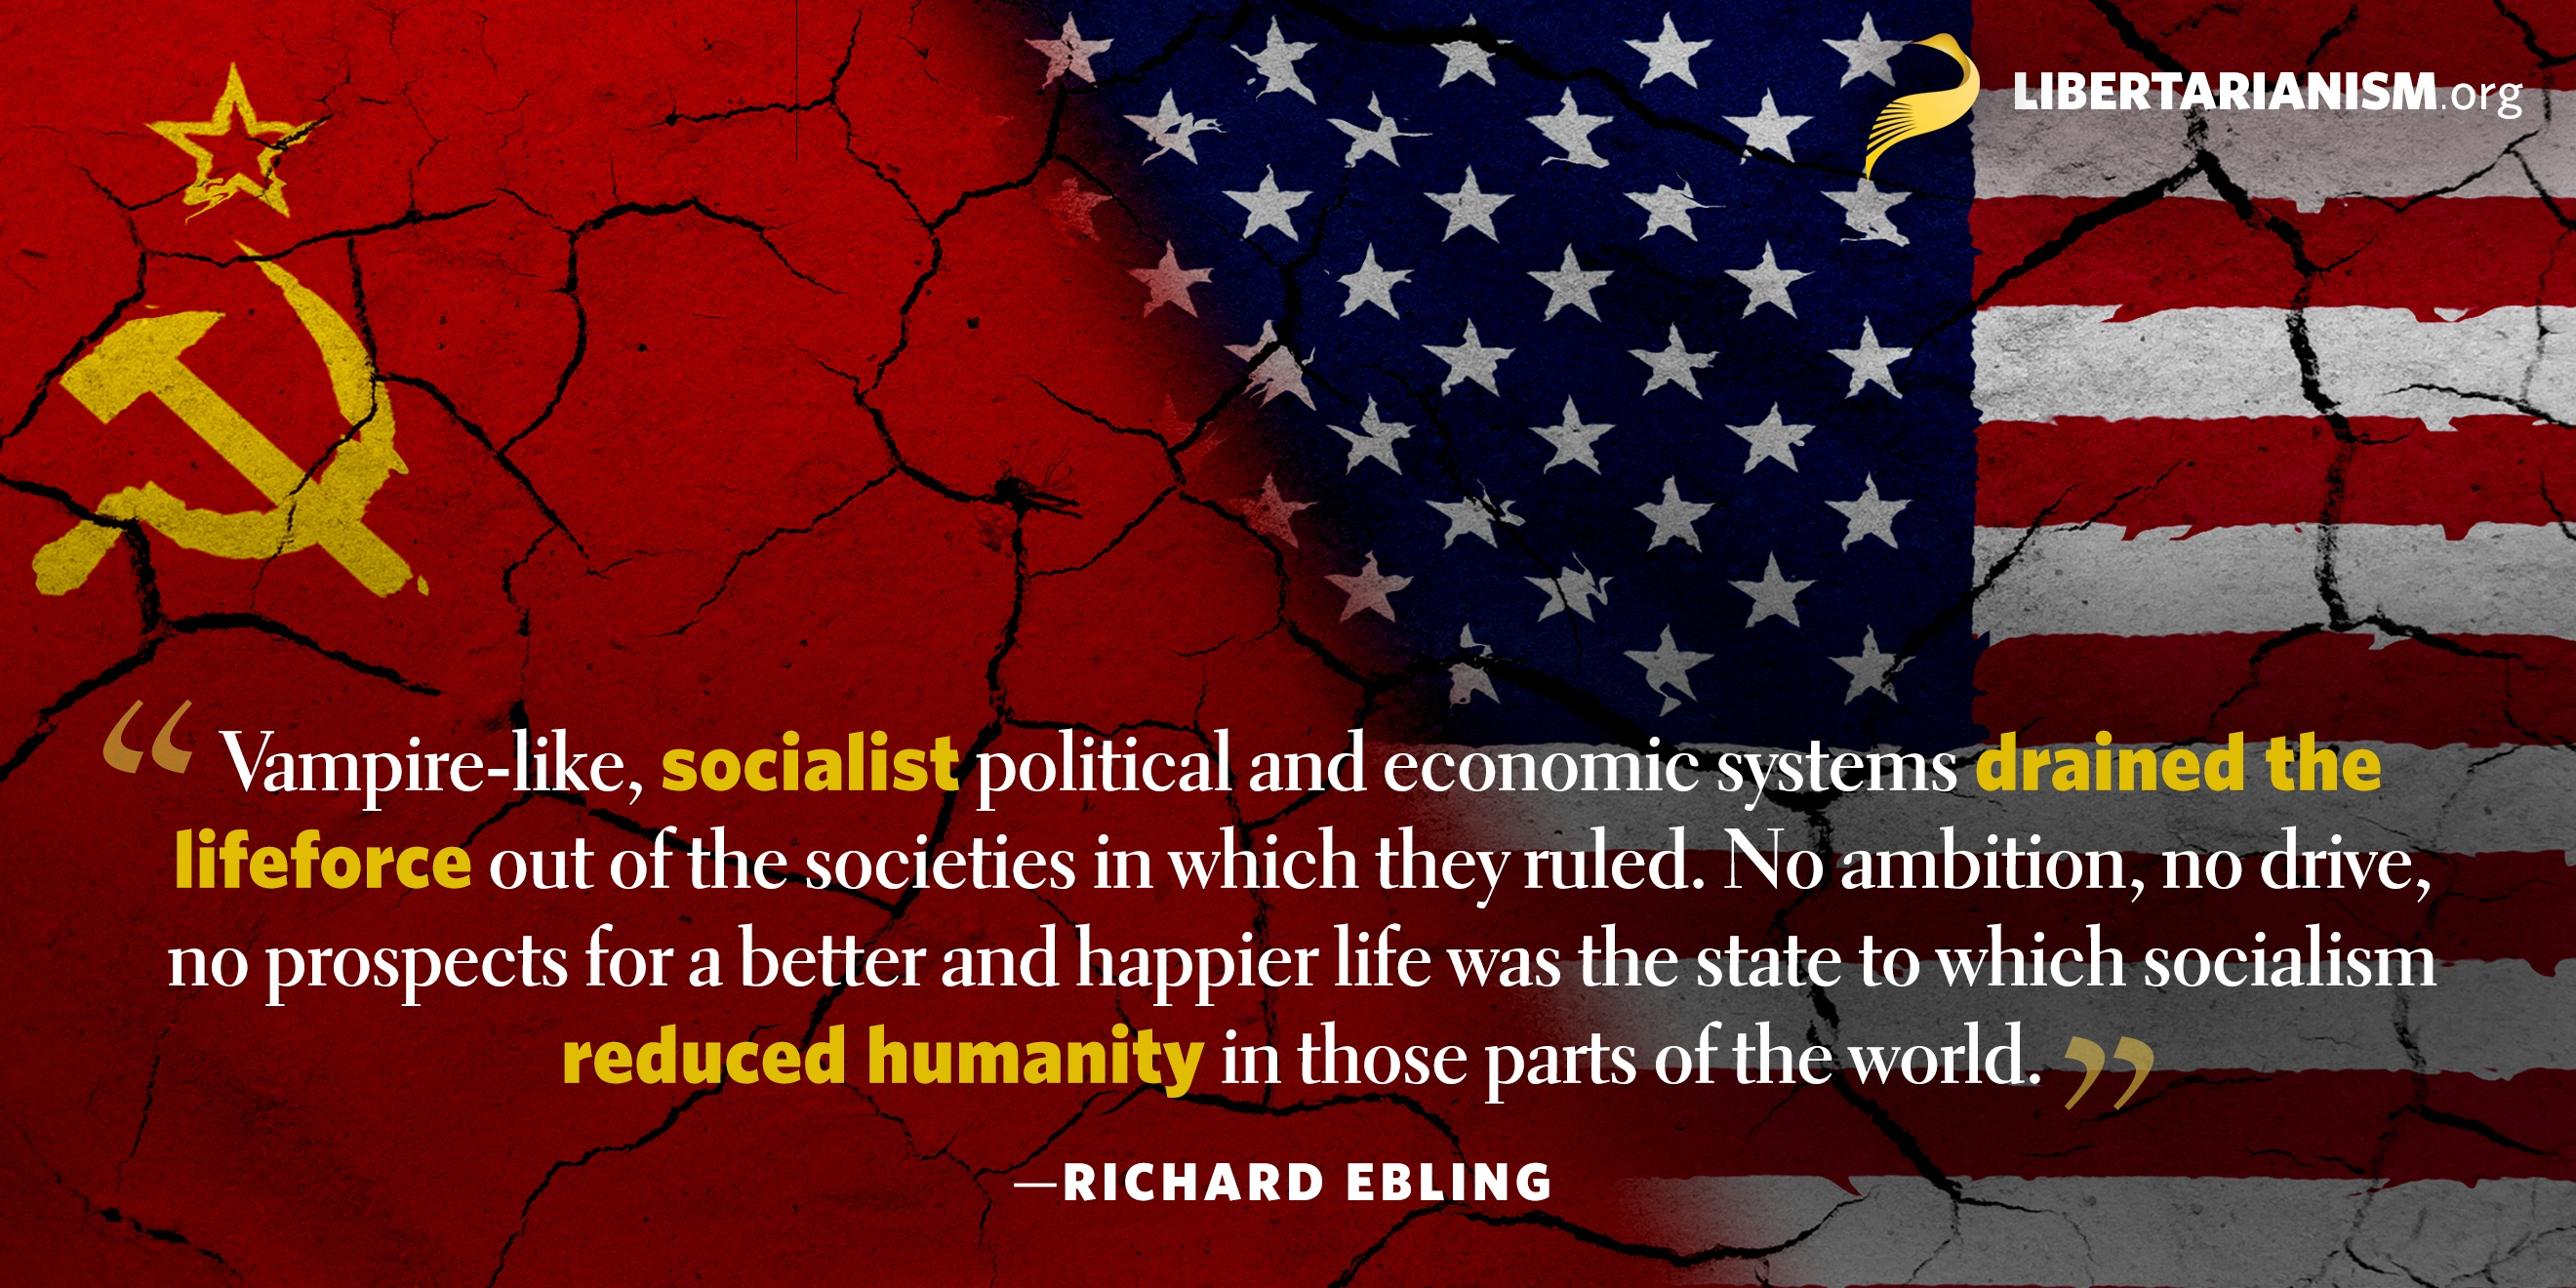 """Vampire-like, socialist political and economic systems drained the lifeforce out of the societies in which they ruled. No ambition, no drive, no prospects for a better and happier life was the state to which socialism reduced humanity in those parts of the world."" – Richard Ebling [2640 x 1320]"